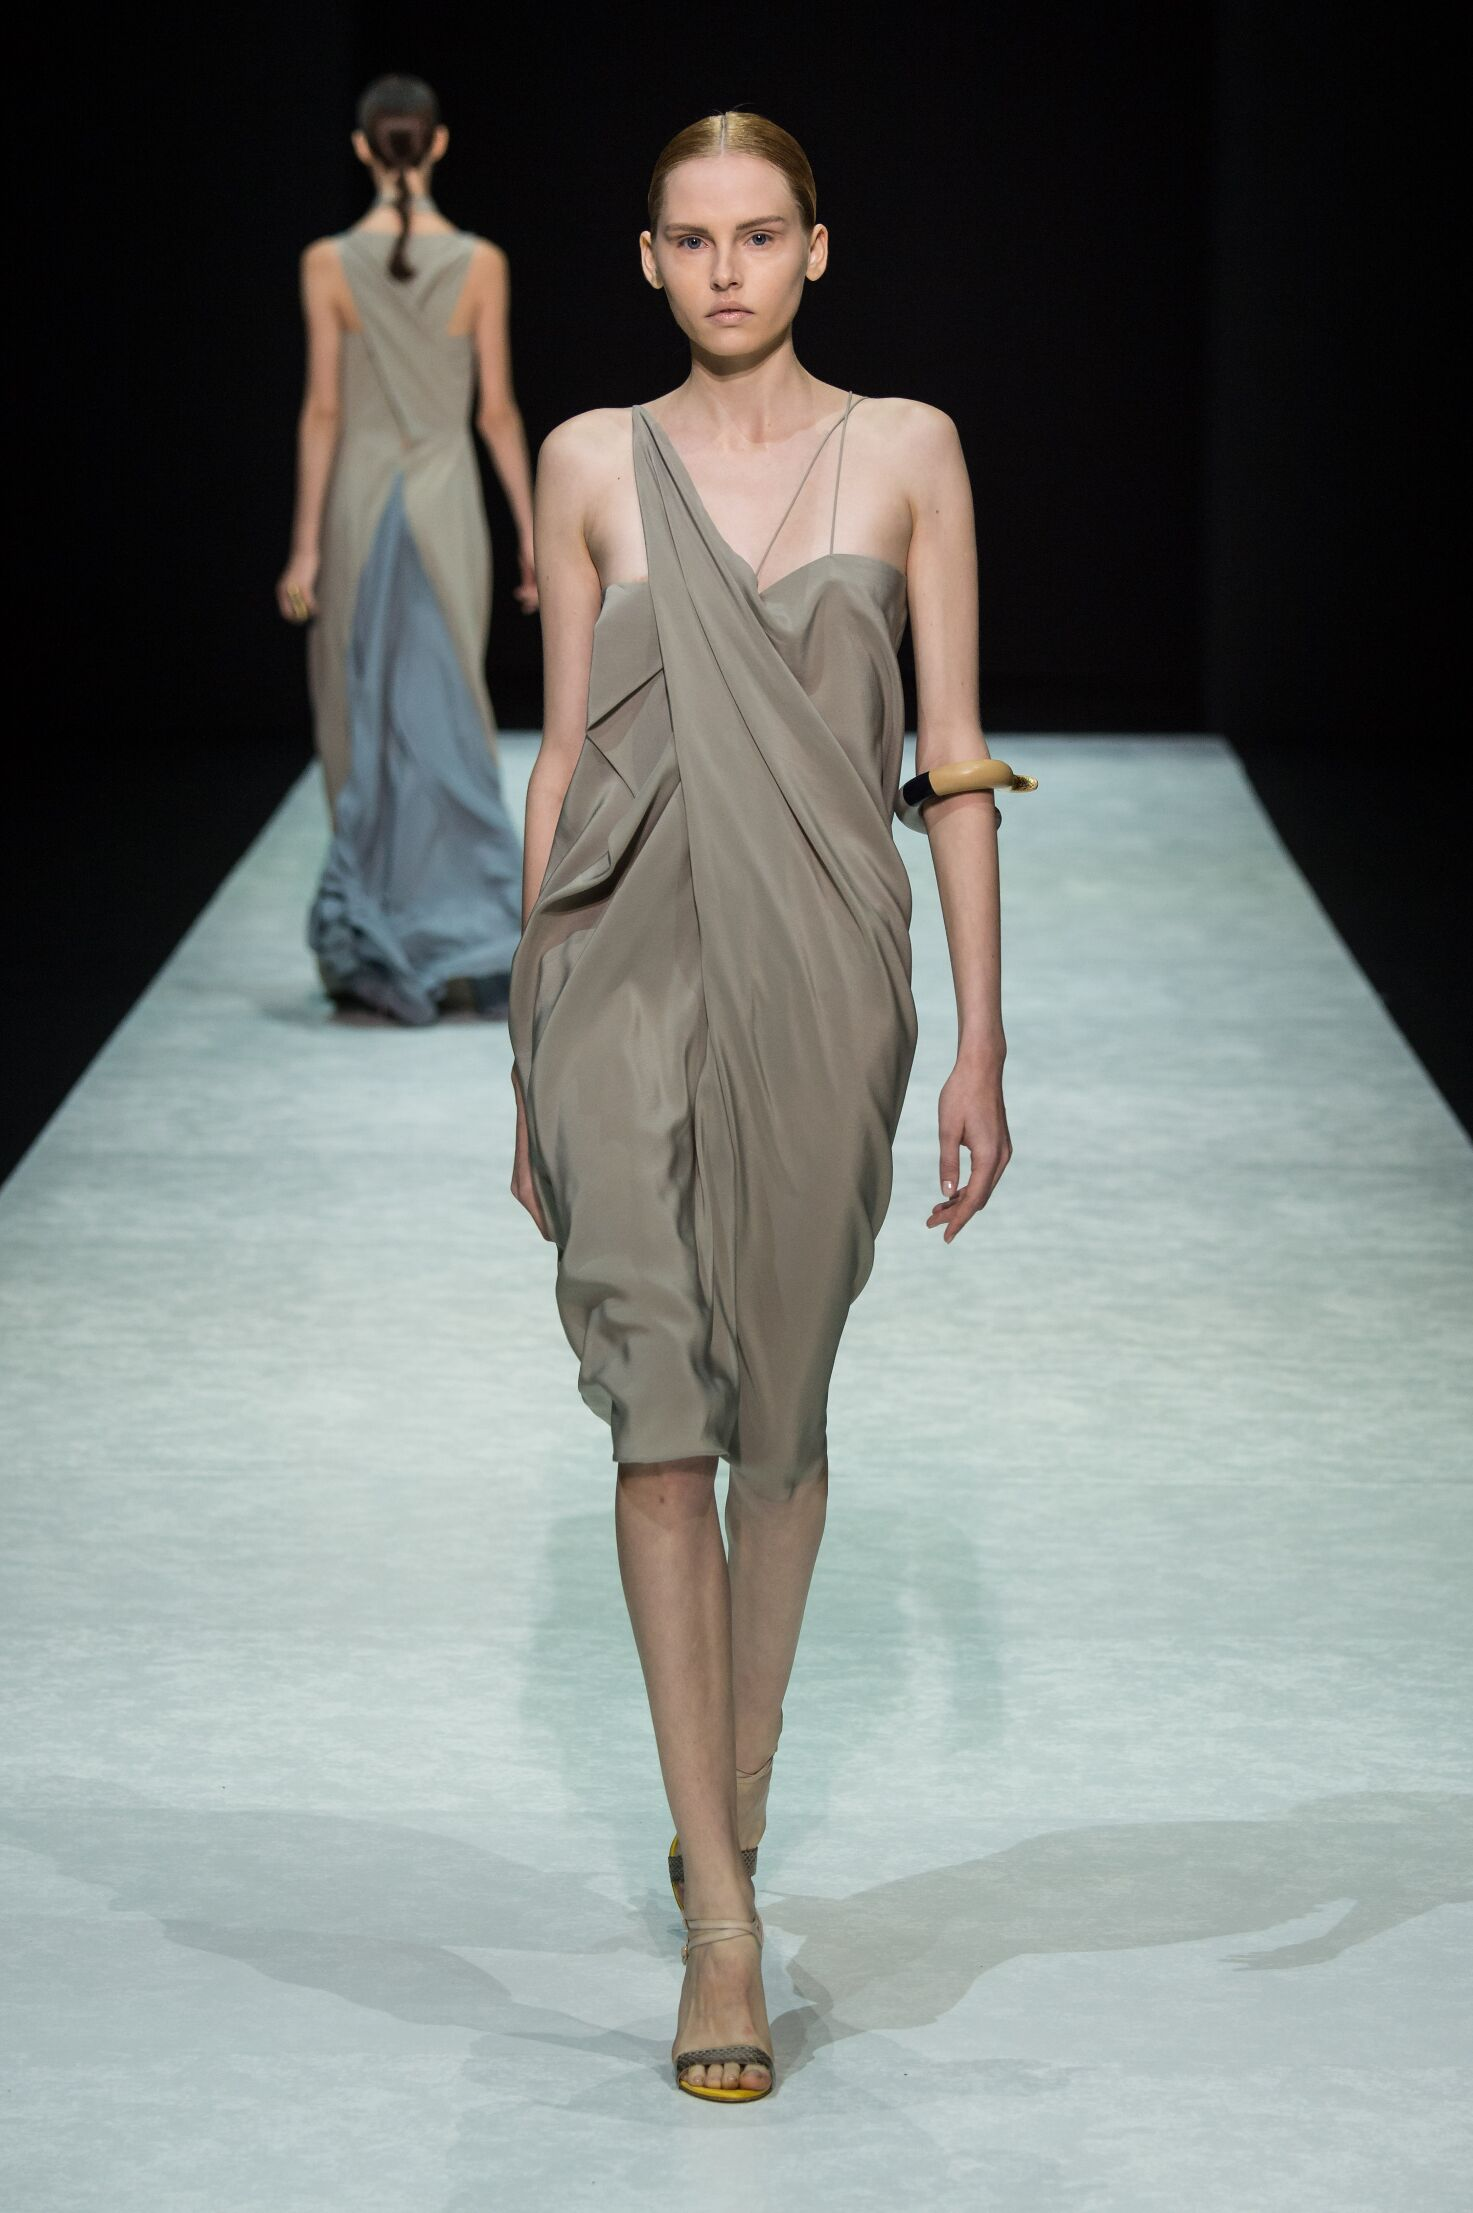 Runway Angelos Bratis Spring Summer 2015 Women's Collection Milan Fashion Week